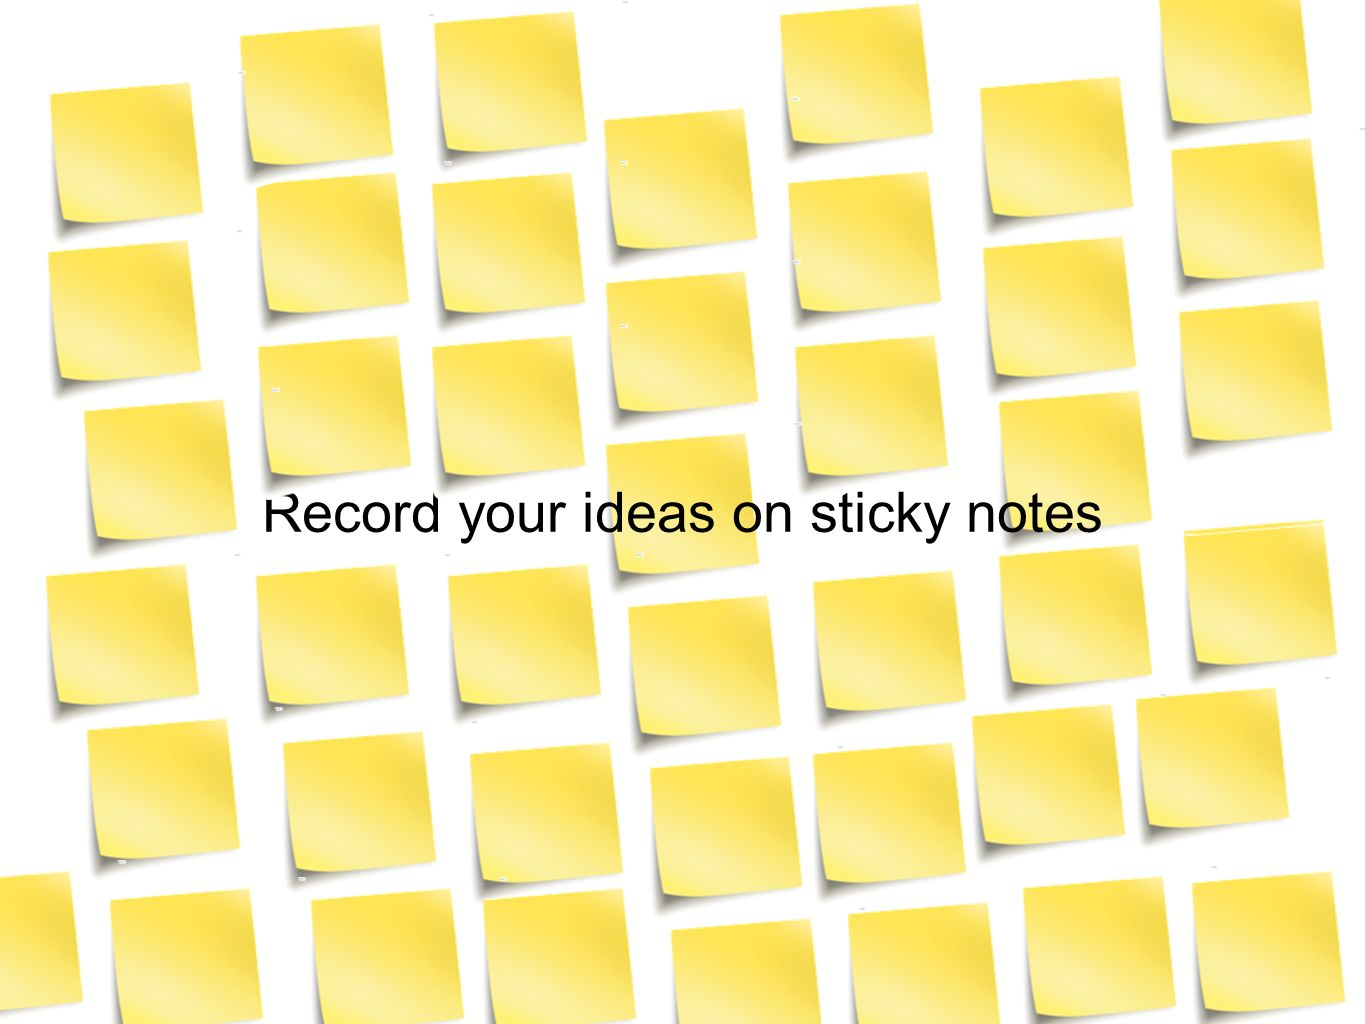 Record your ideas on sticky notes